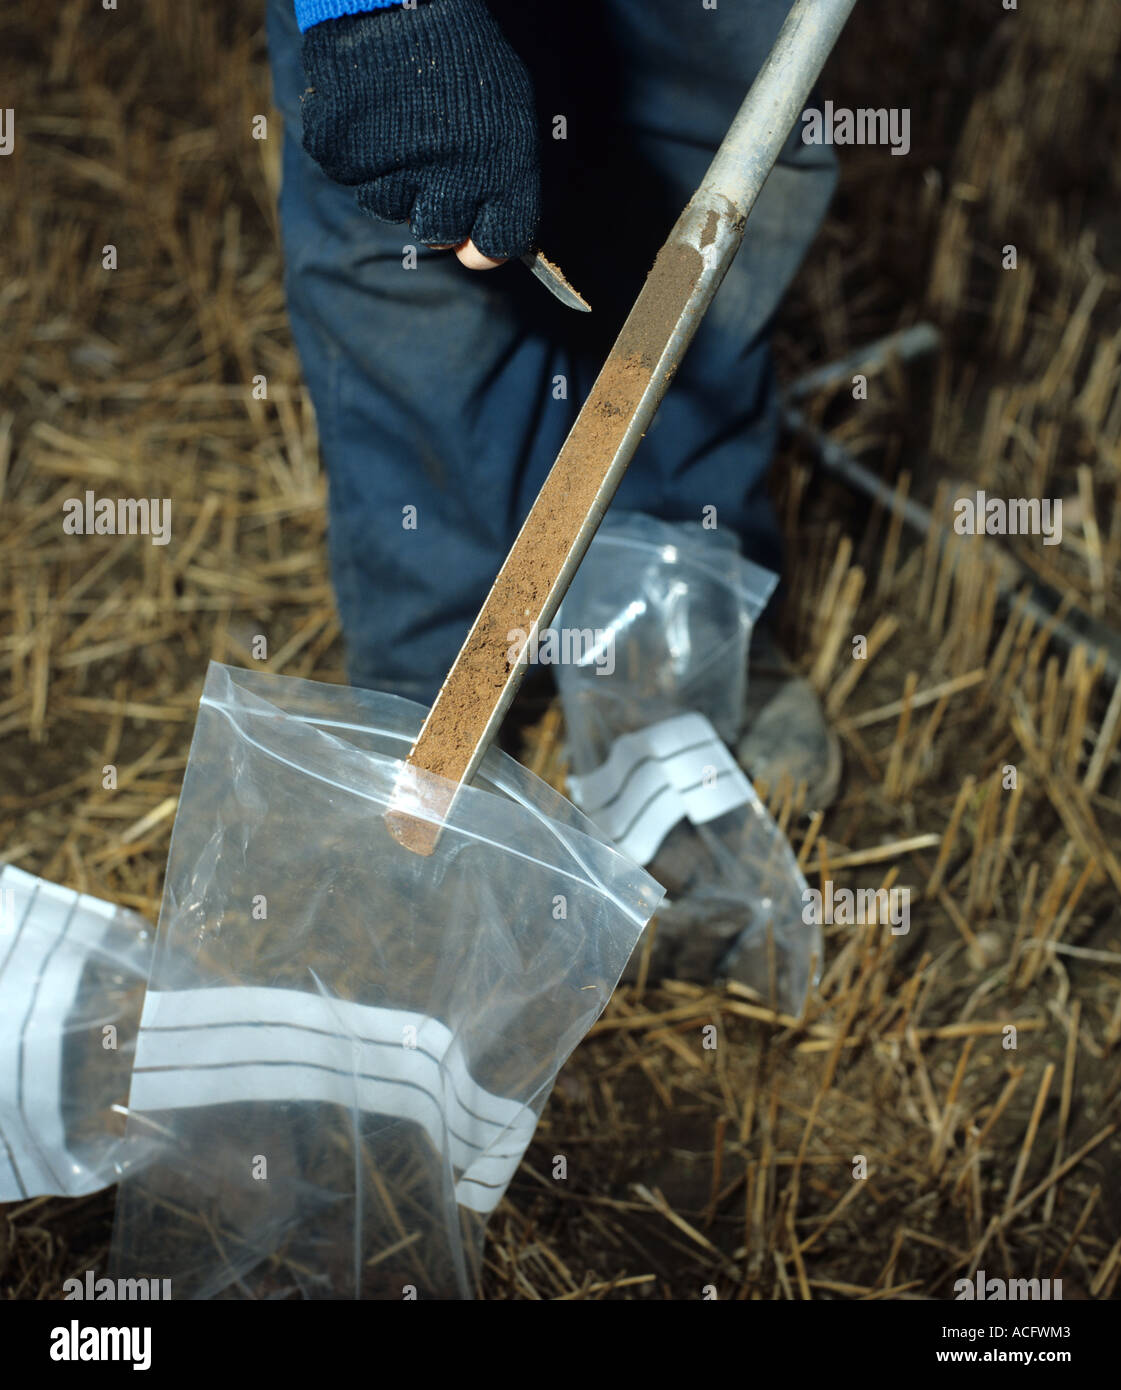 Researcher taking manual soil core sample with metal corer - Stock Image